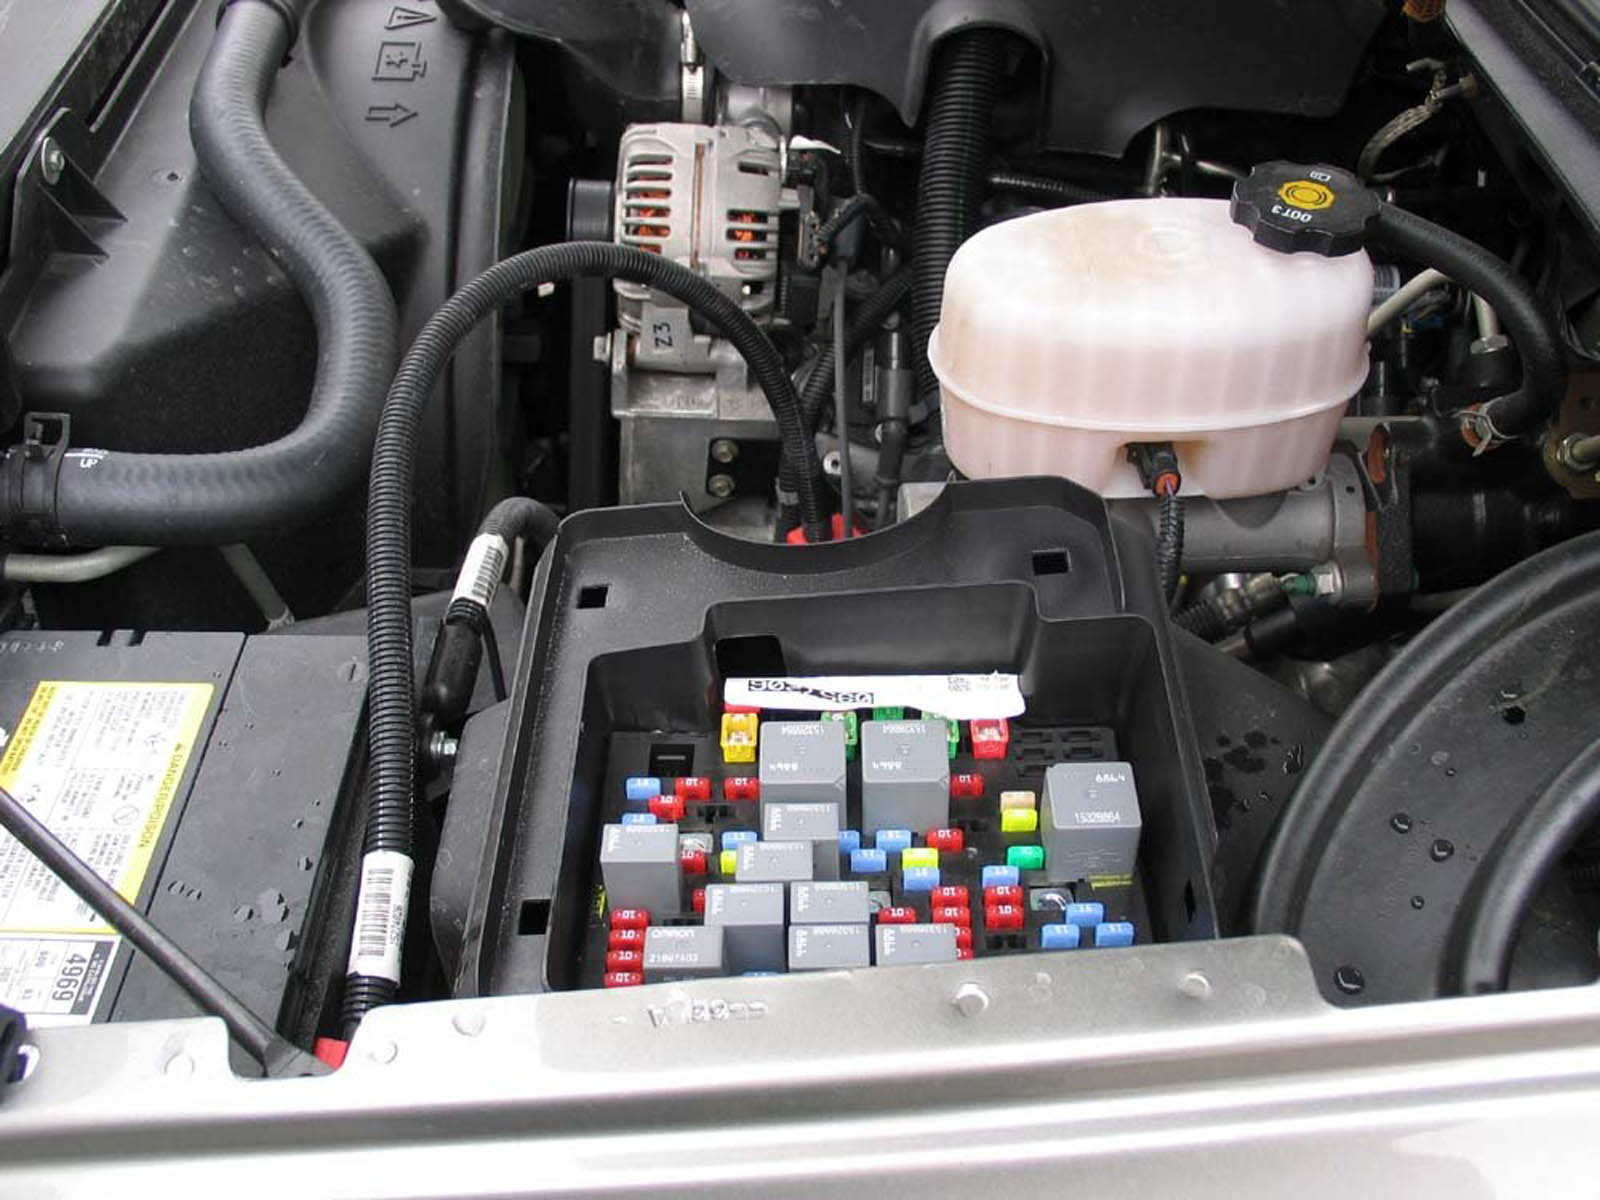 MMMay 27 Fuse Box 04 69845 chevrolet silverado gmt800 1999 2006 fuse box diagram chevroletforum 2003 Chevy Cargo Van at bayanpartner.co